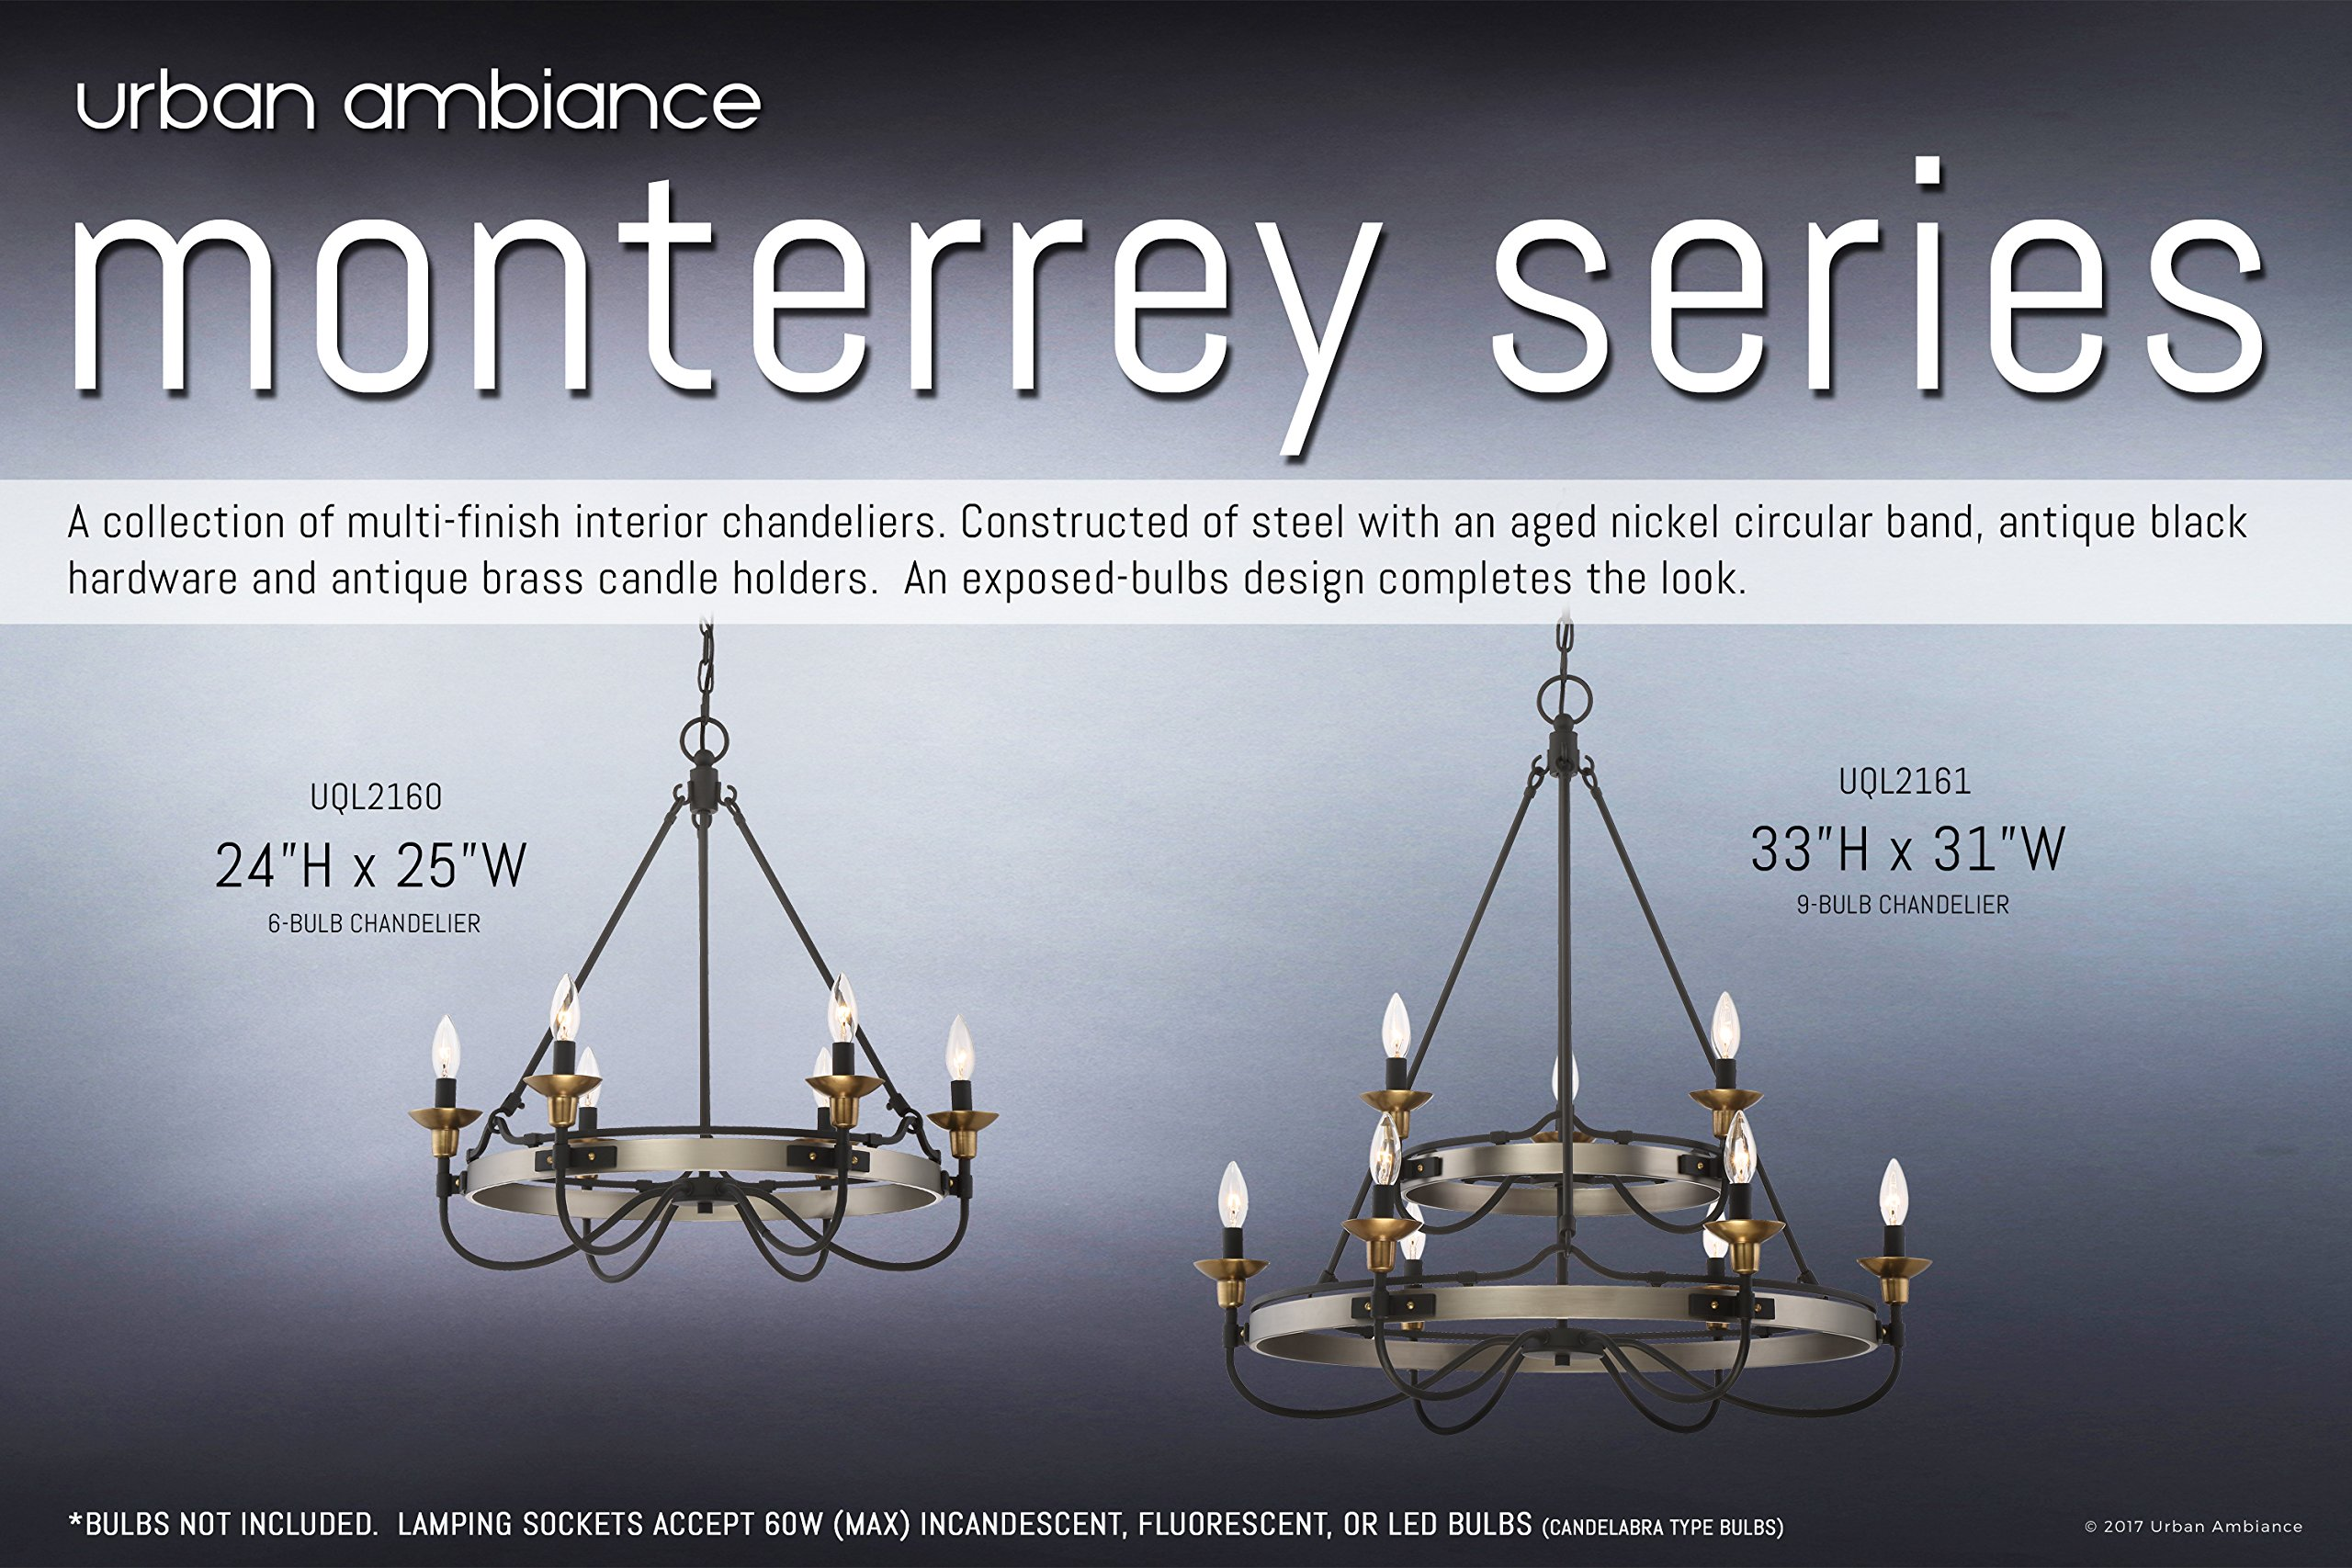 Luxury Transitional Chandelier, Medium Size: 24.25''H x 24.75''W, with Colonial Style Elements, Brass and Bronze Accented Design, Antique Aged Nickel Finish and Exposed Bulbs, UQL2160 by Urban Ambiance